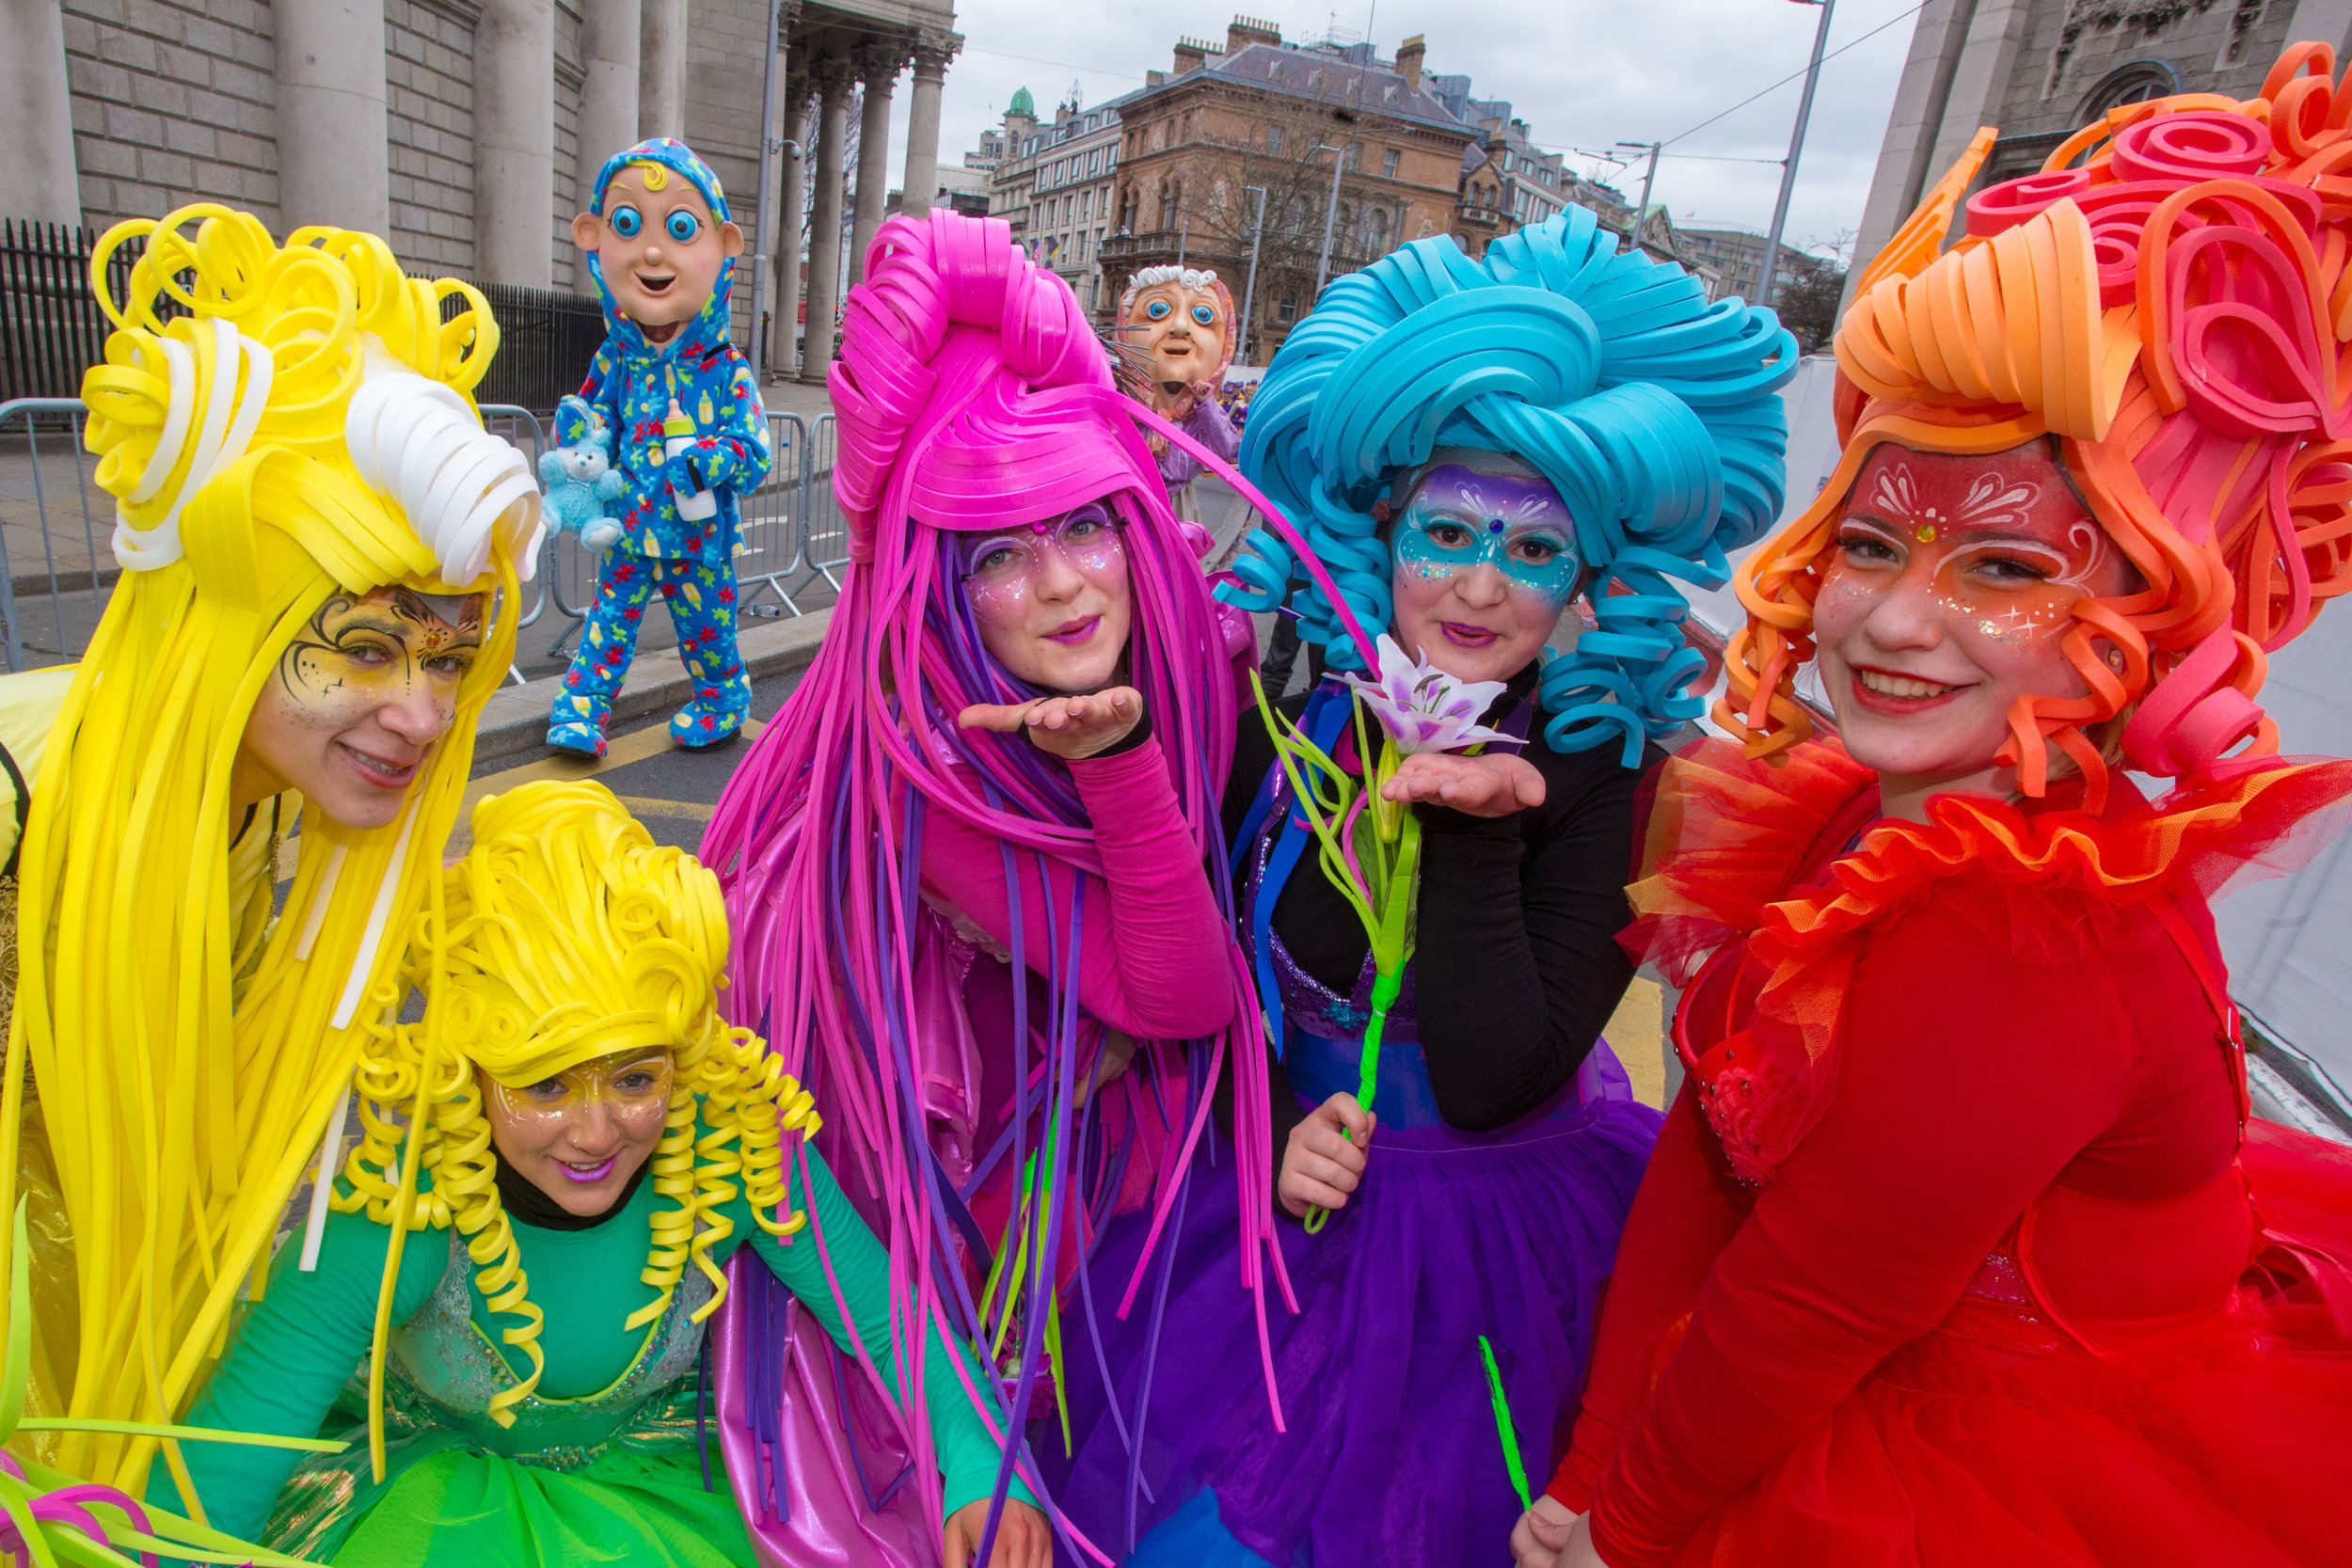 Some of the highlights of  St Patricks Day parade in Dublin. Photo. allenkielyphotography.com